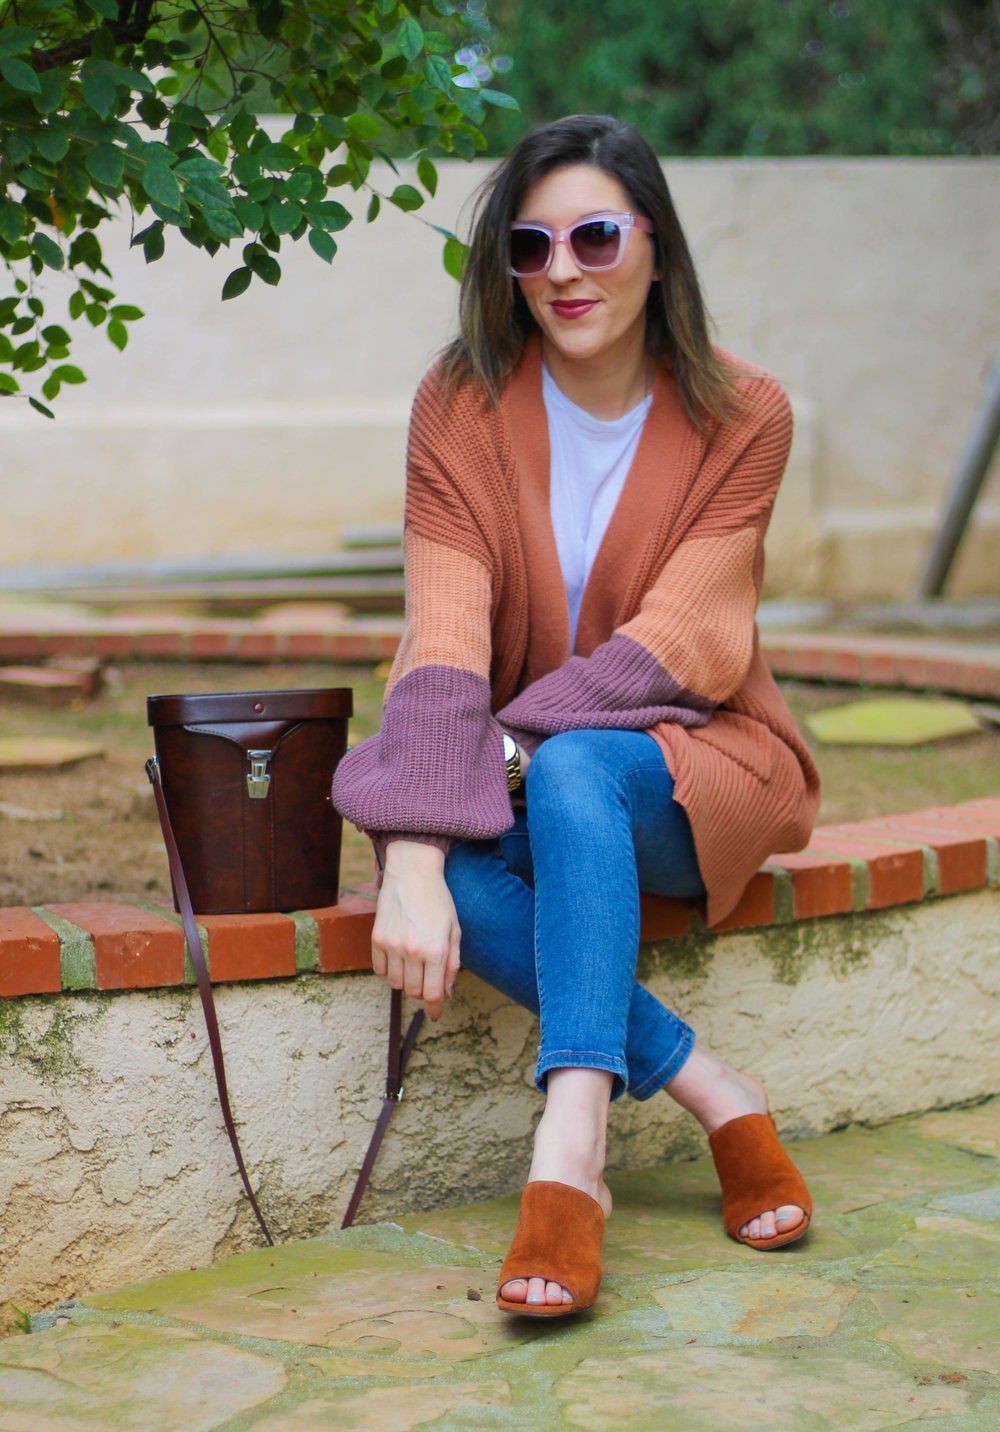 Sweater:   Urban Outfitters   // Jeans:   BR   // Top: Pencey Standard, similar   here   // Heels: similar   here   // Sunnies: similar   here   // Bag: Vintage, similar   here